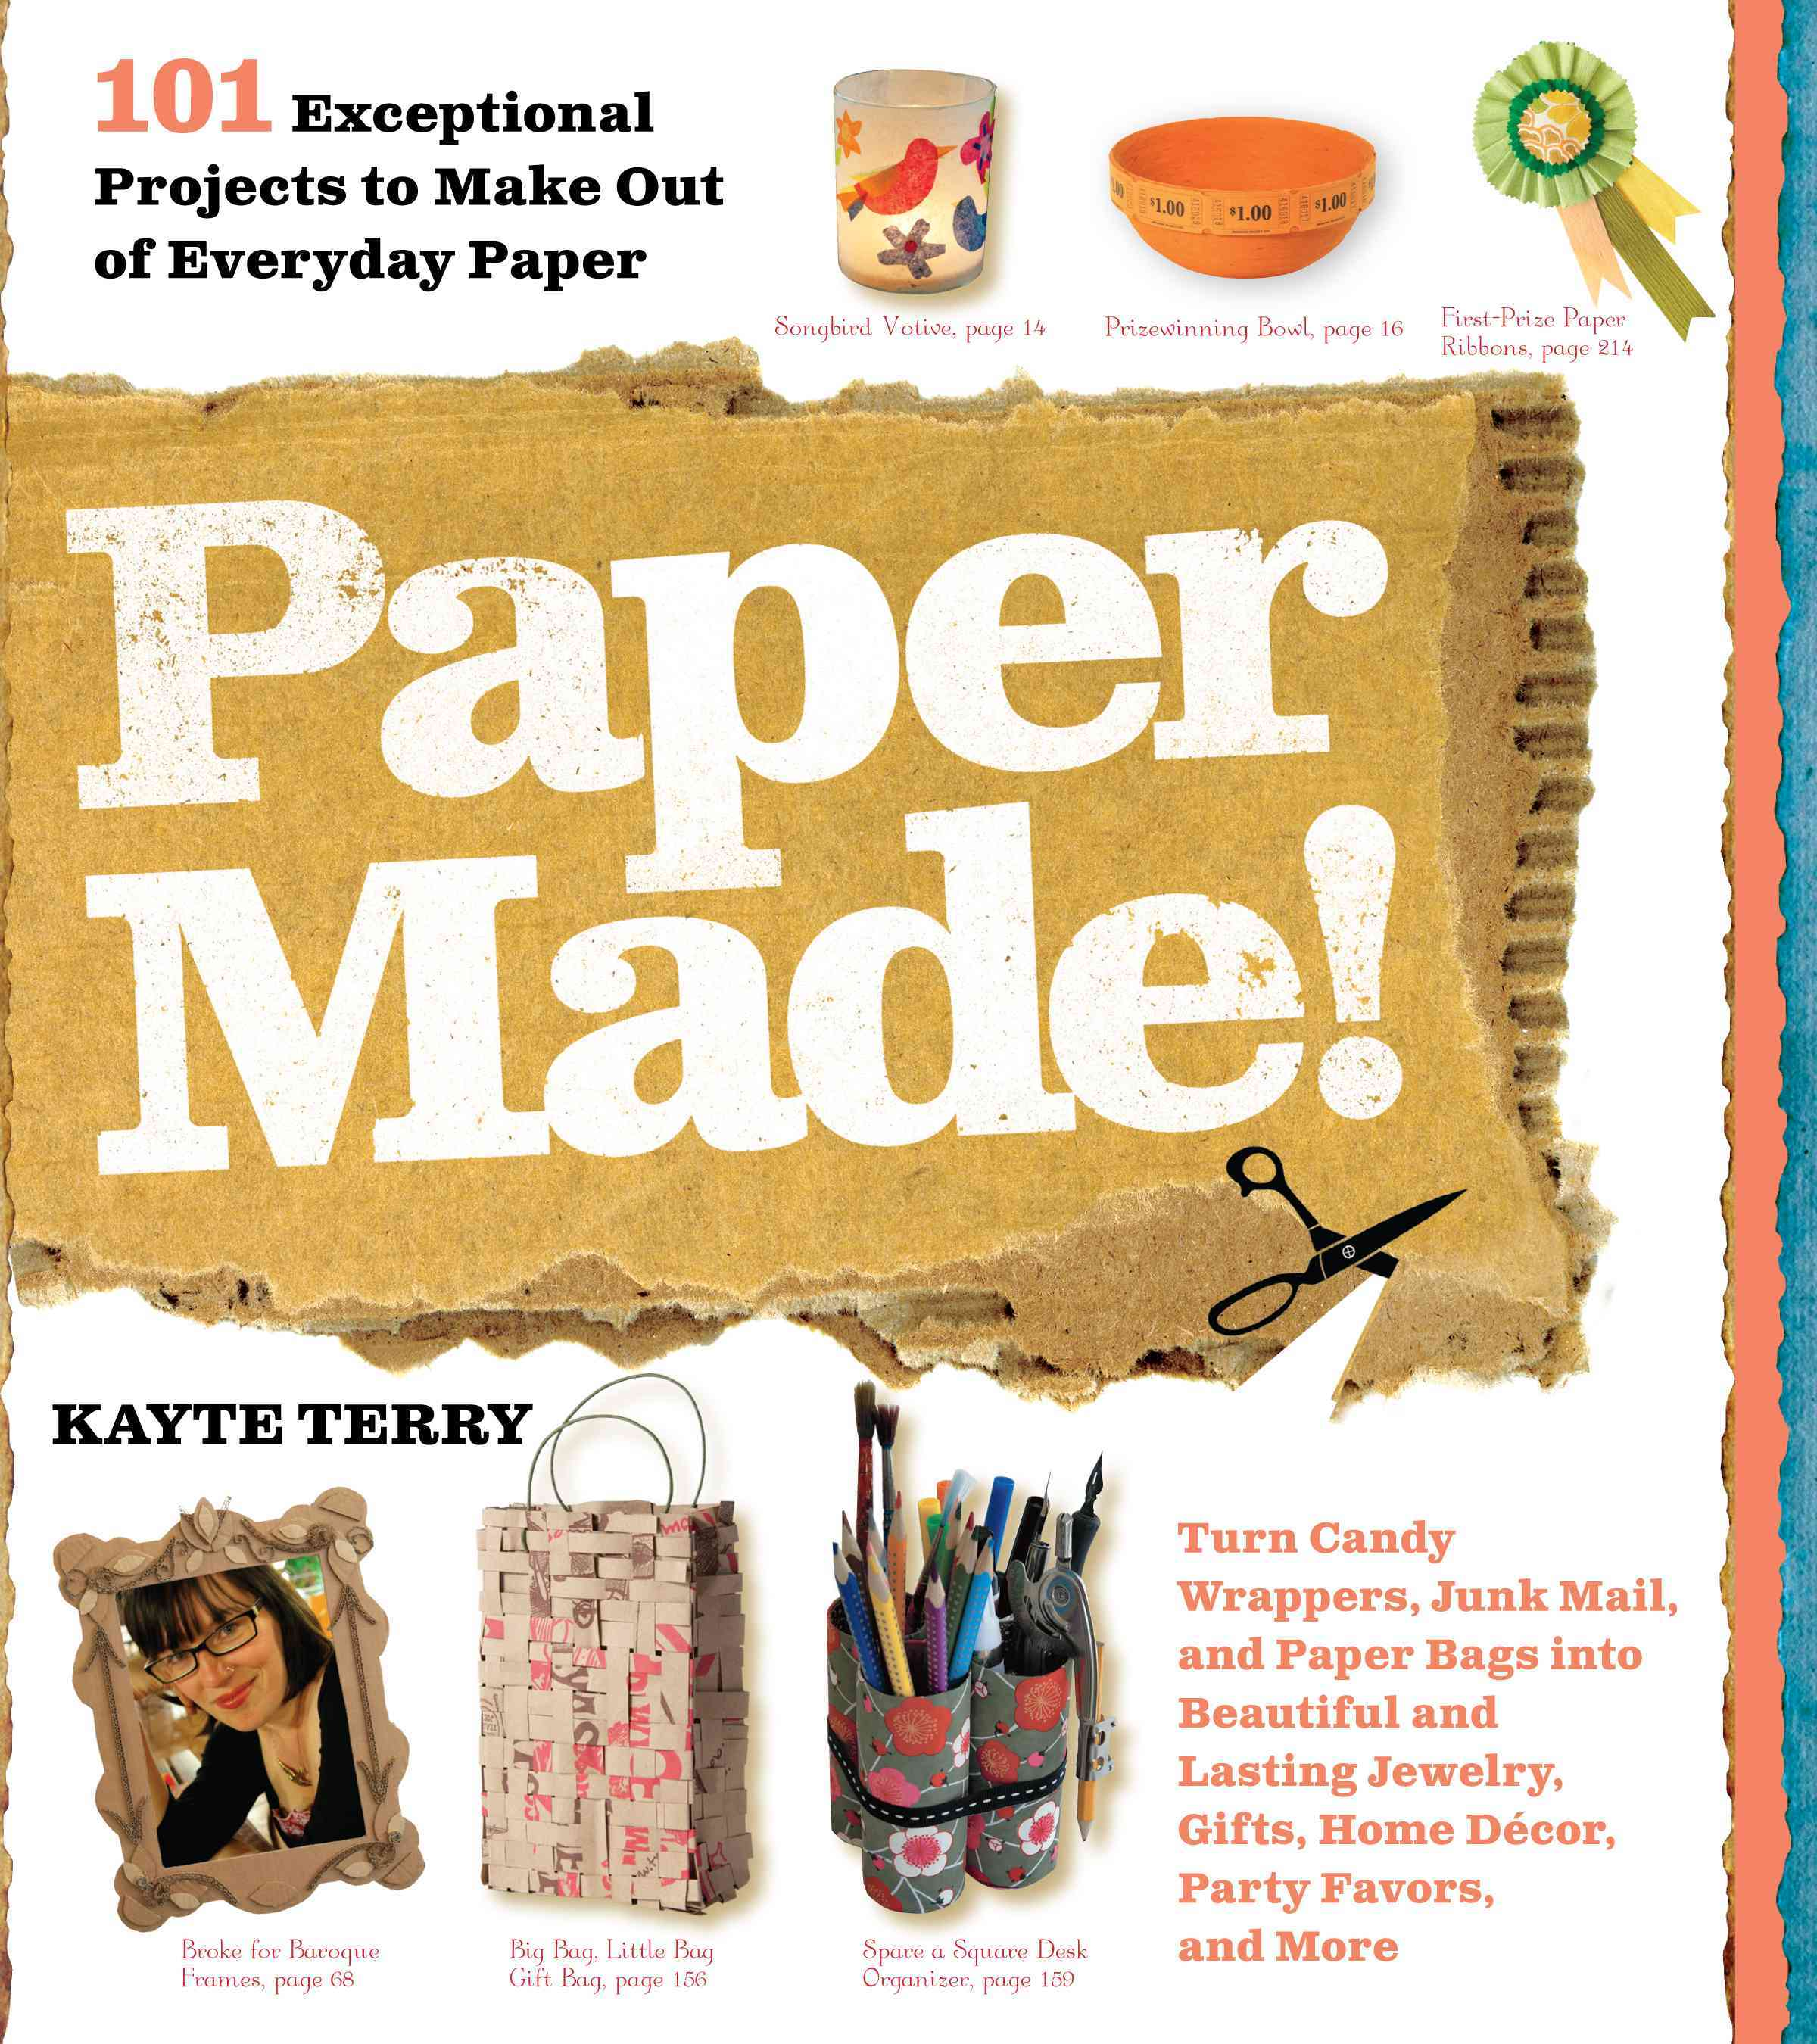 Paper Made!: 101 Exceptional Projects to Make Out of Everyday Paper (Paperback) - Thumbnail 0